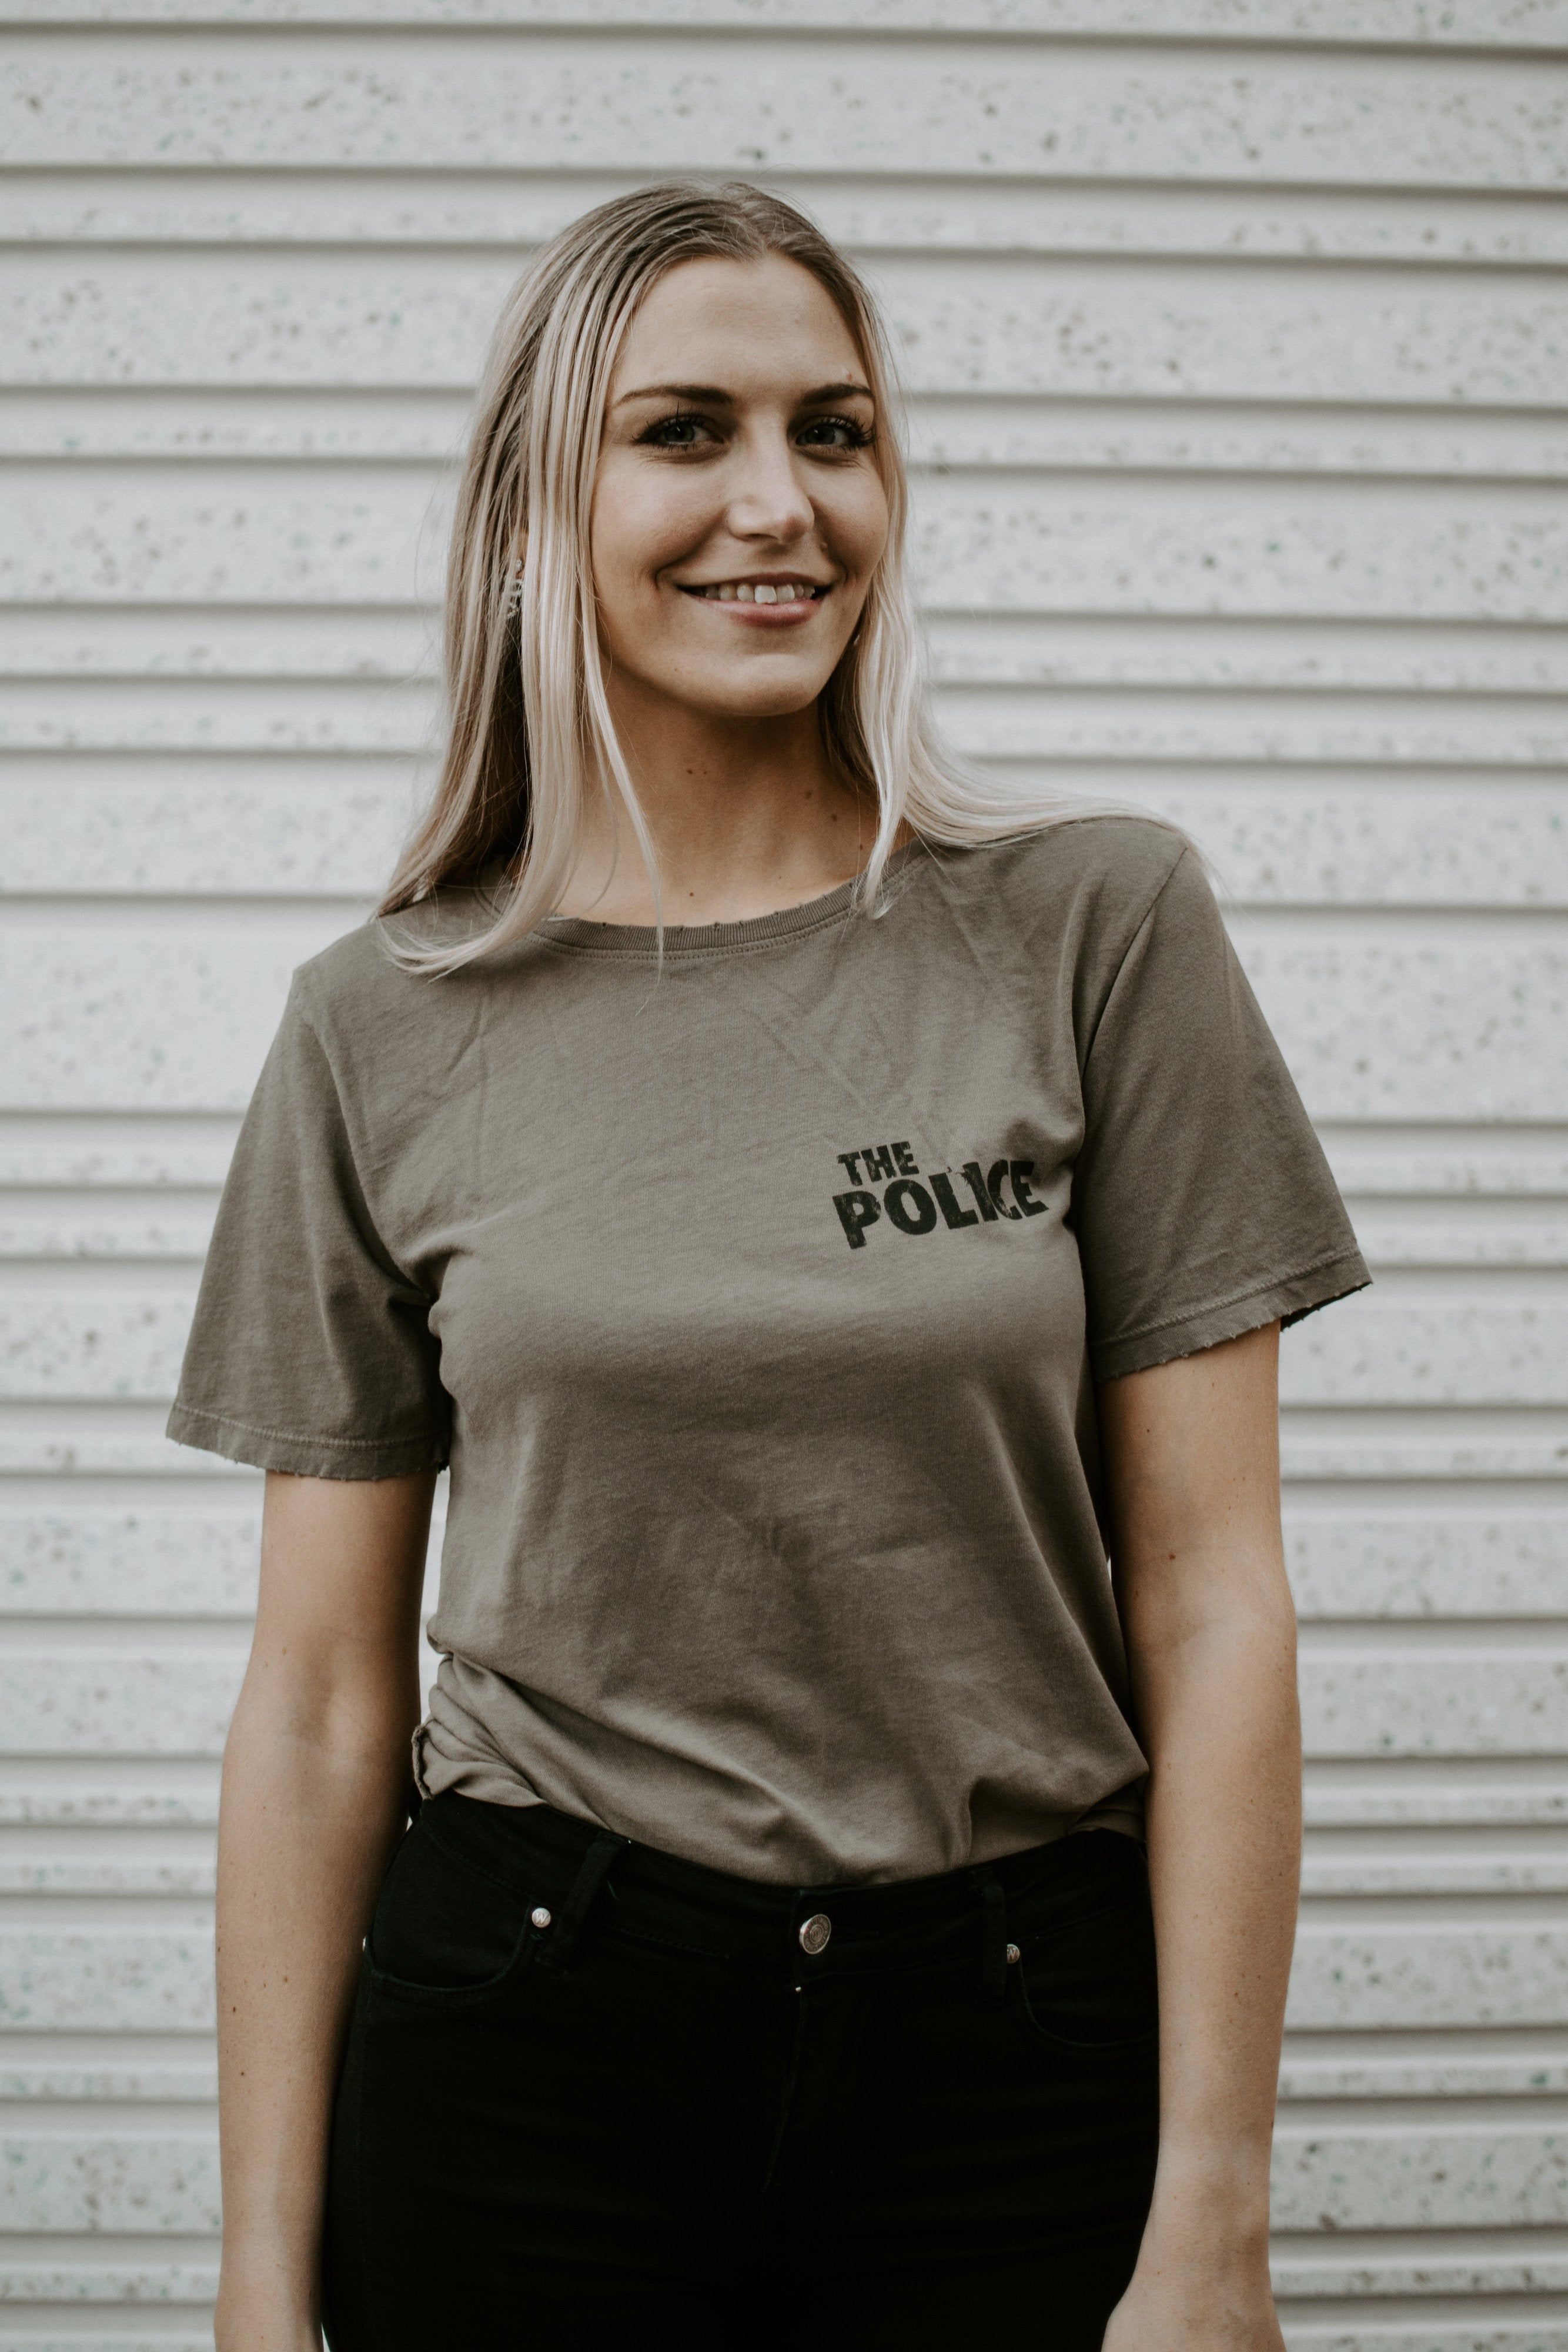 The Police Graphic Band Tee - Parkside Harbor